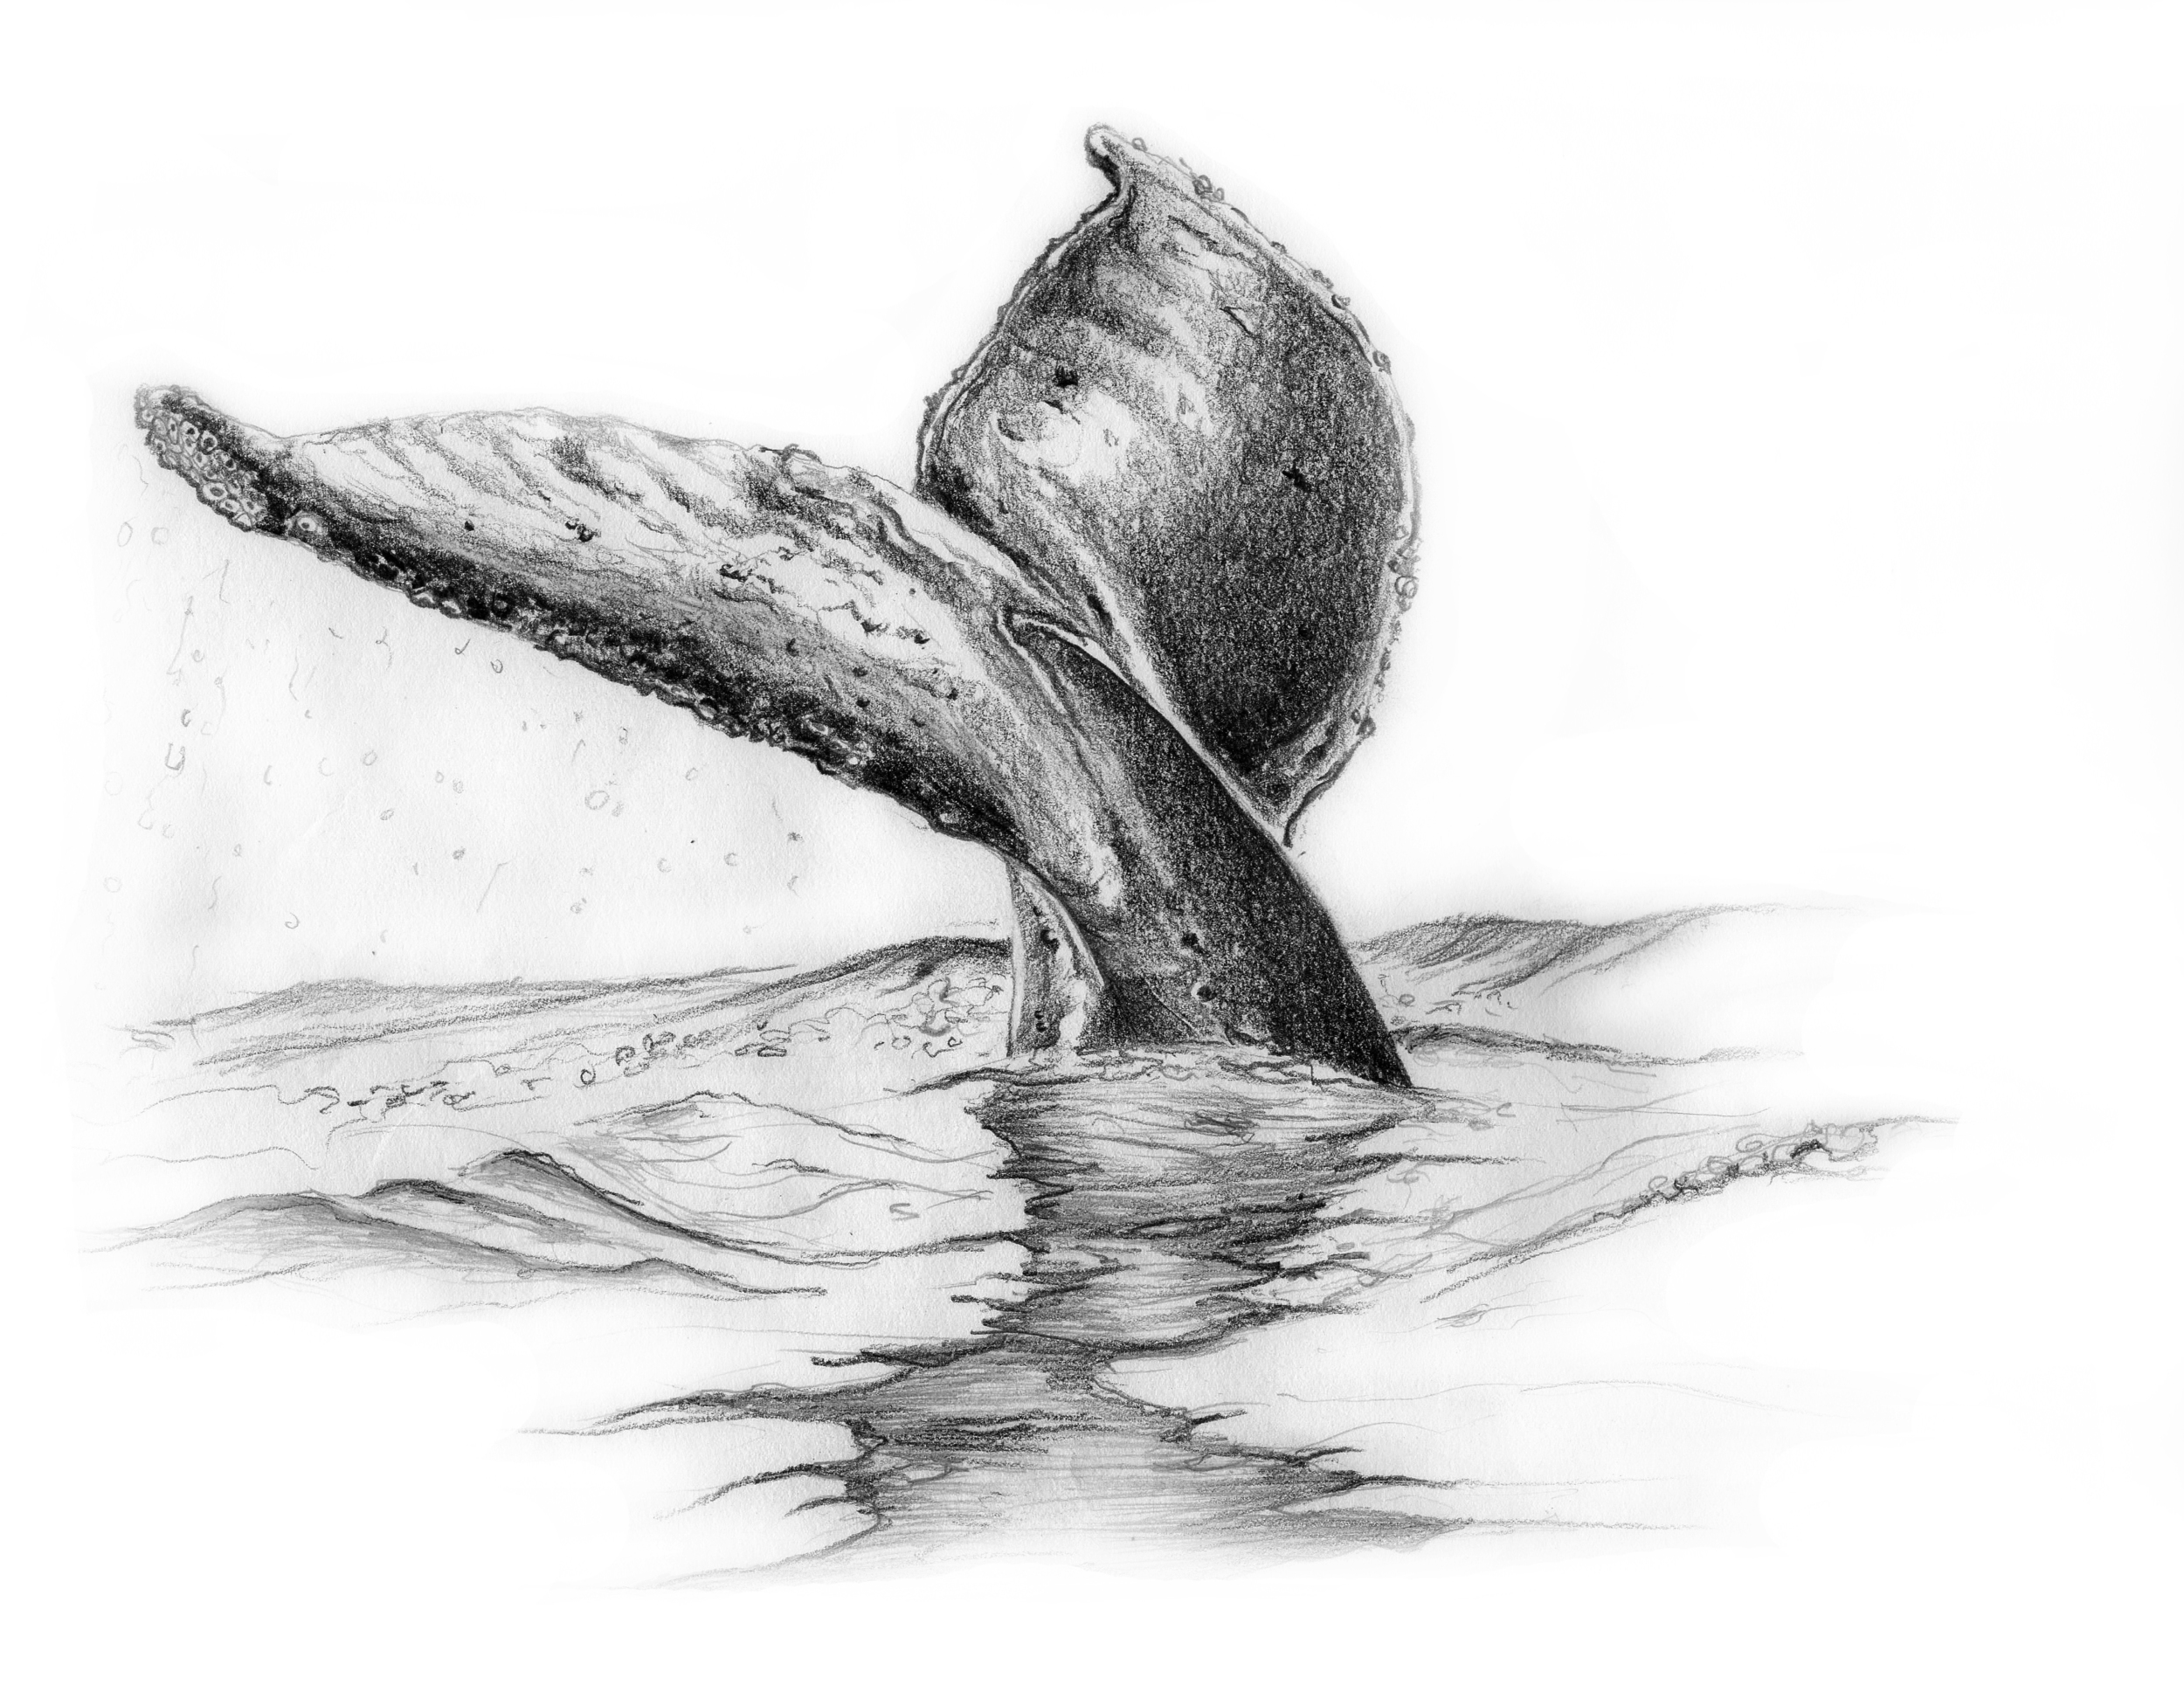 Whale Tail by LK Weiss